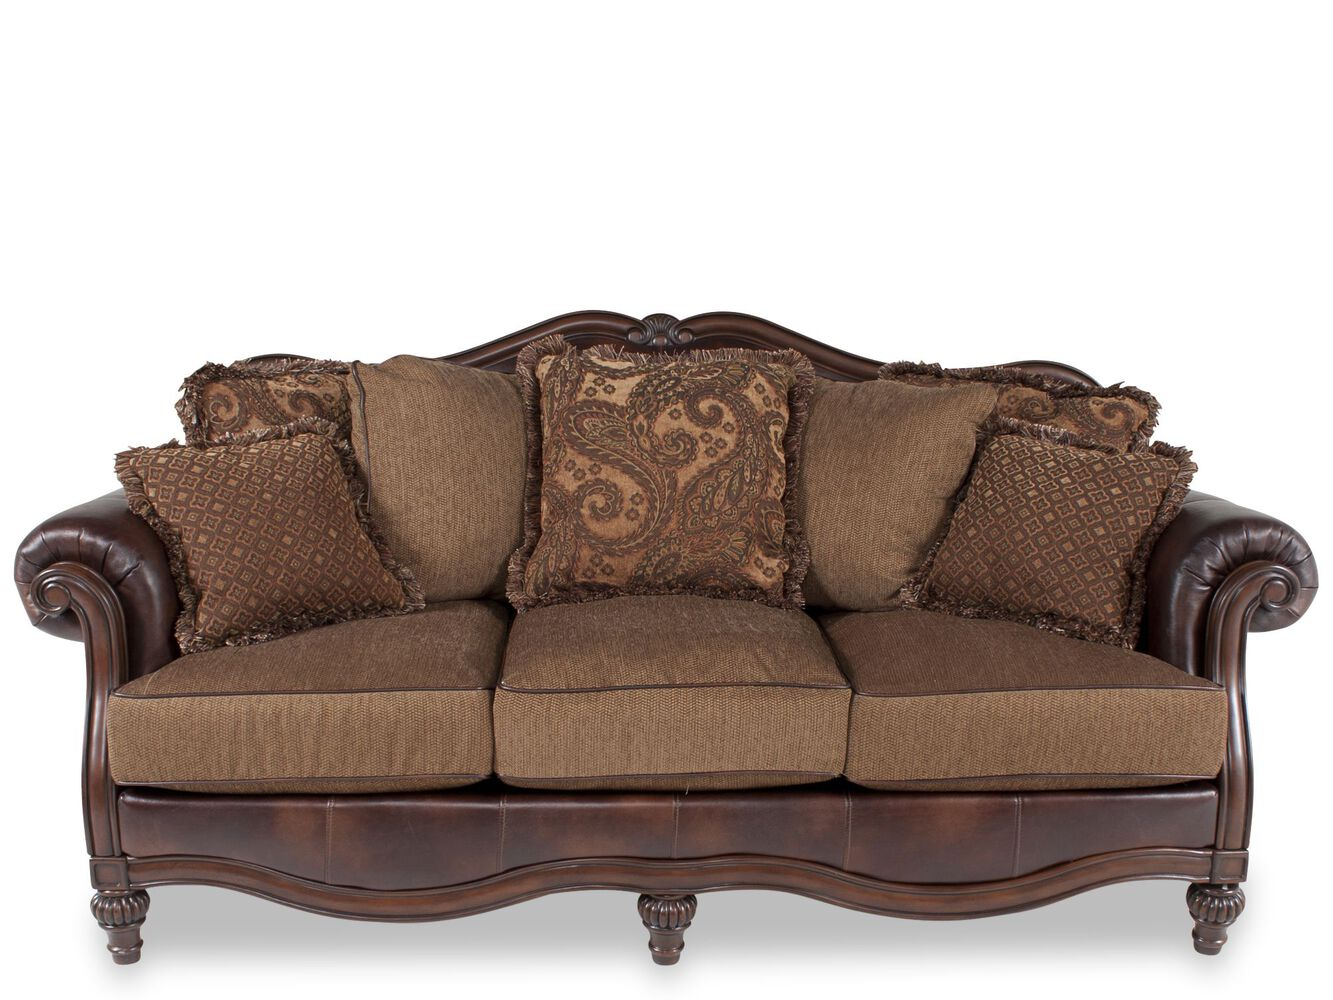 Mathis Brothers Sofa Italian Furniture Sofa By Savannah Collections Mathis Brothers Thesofa